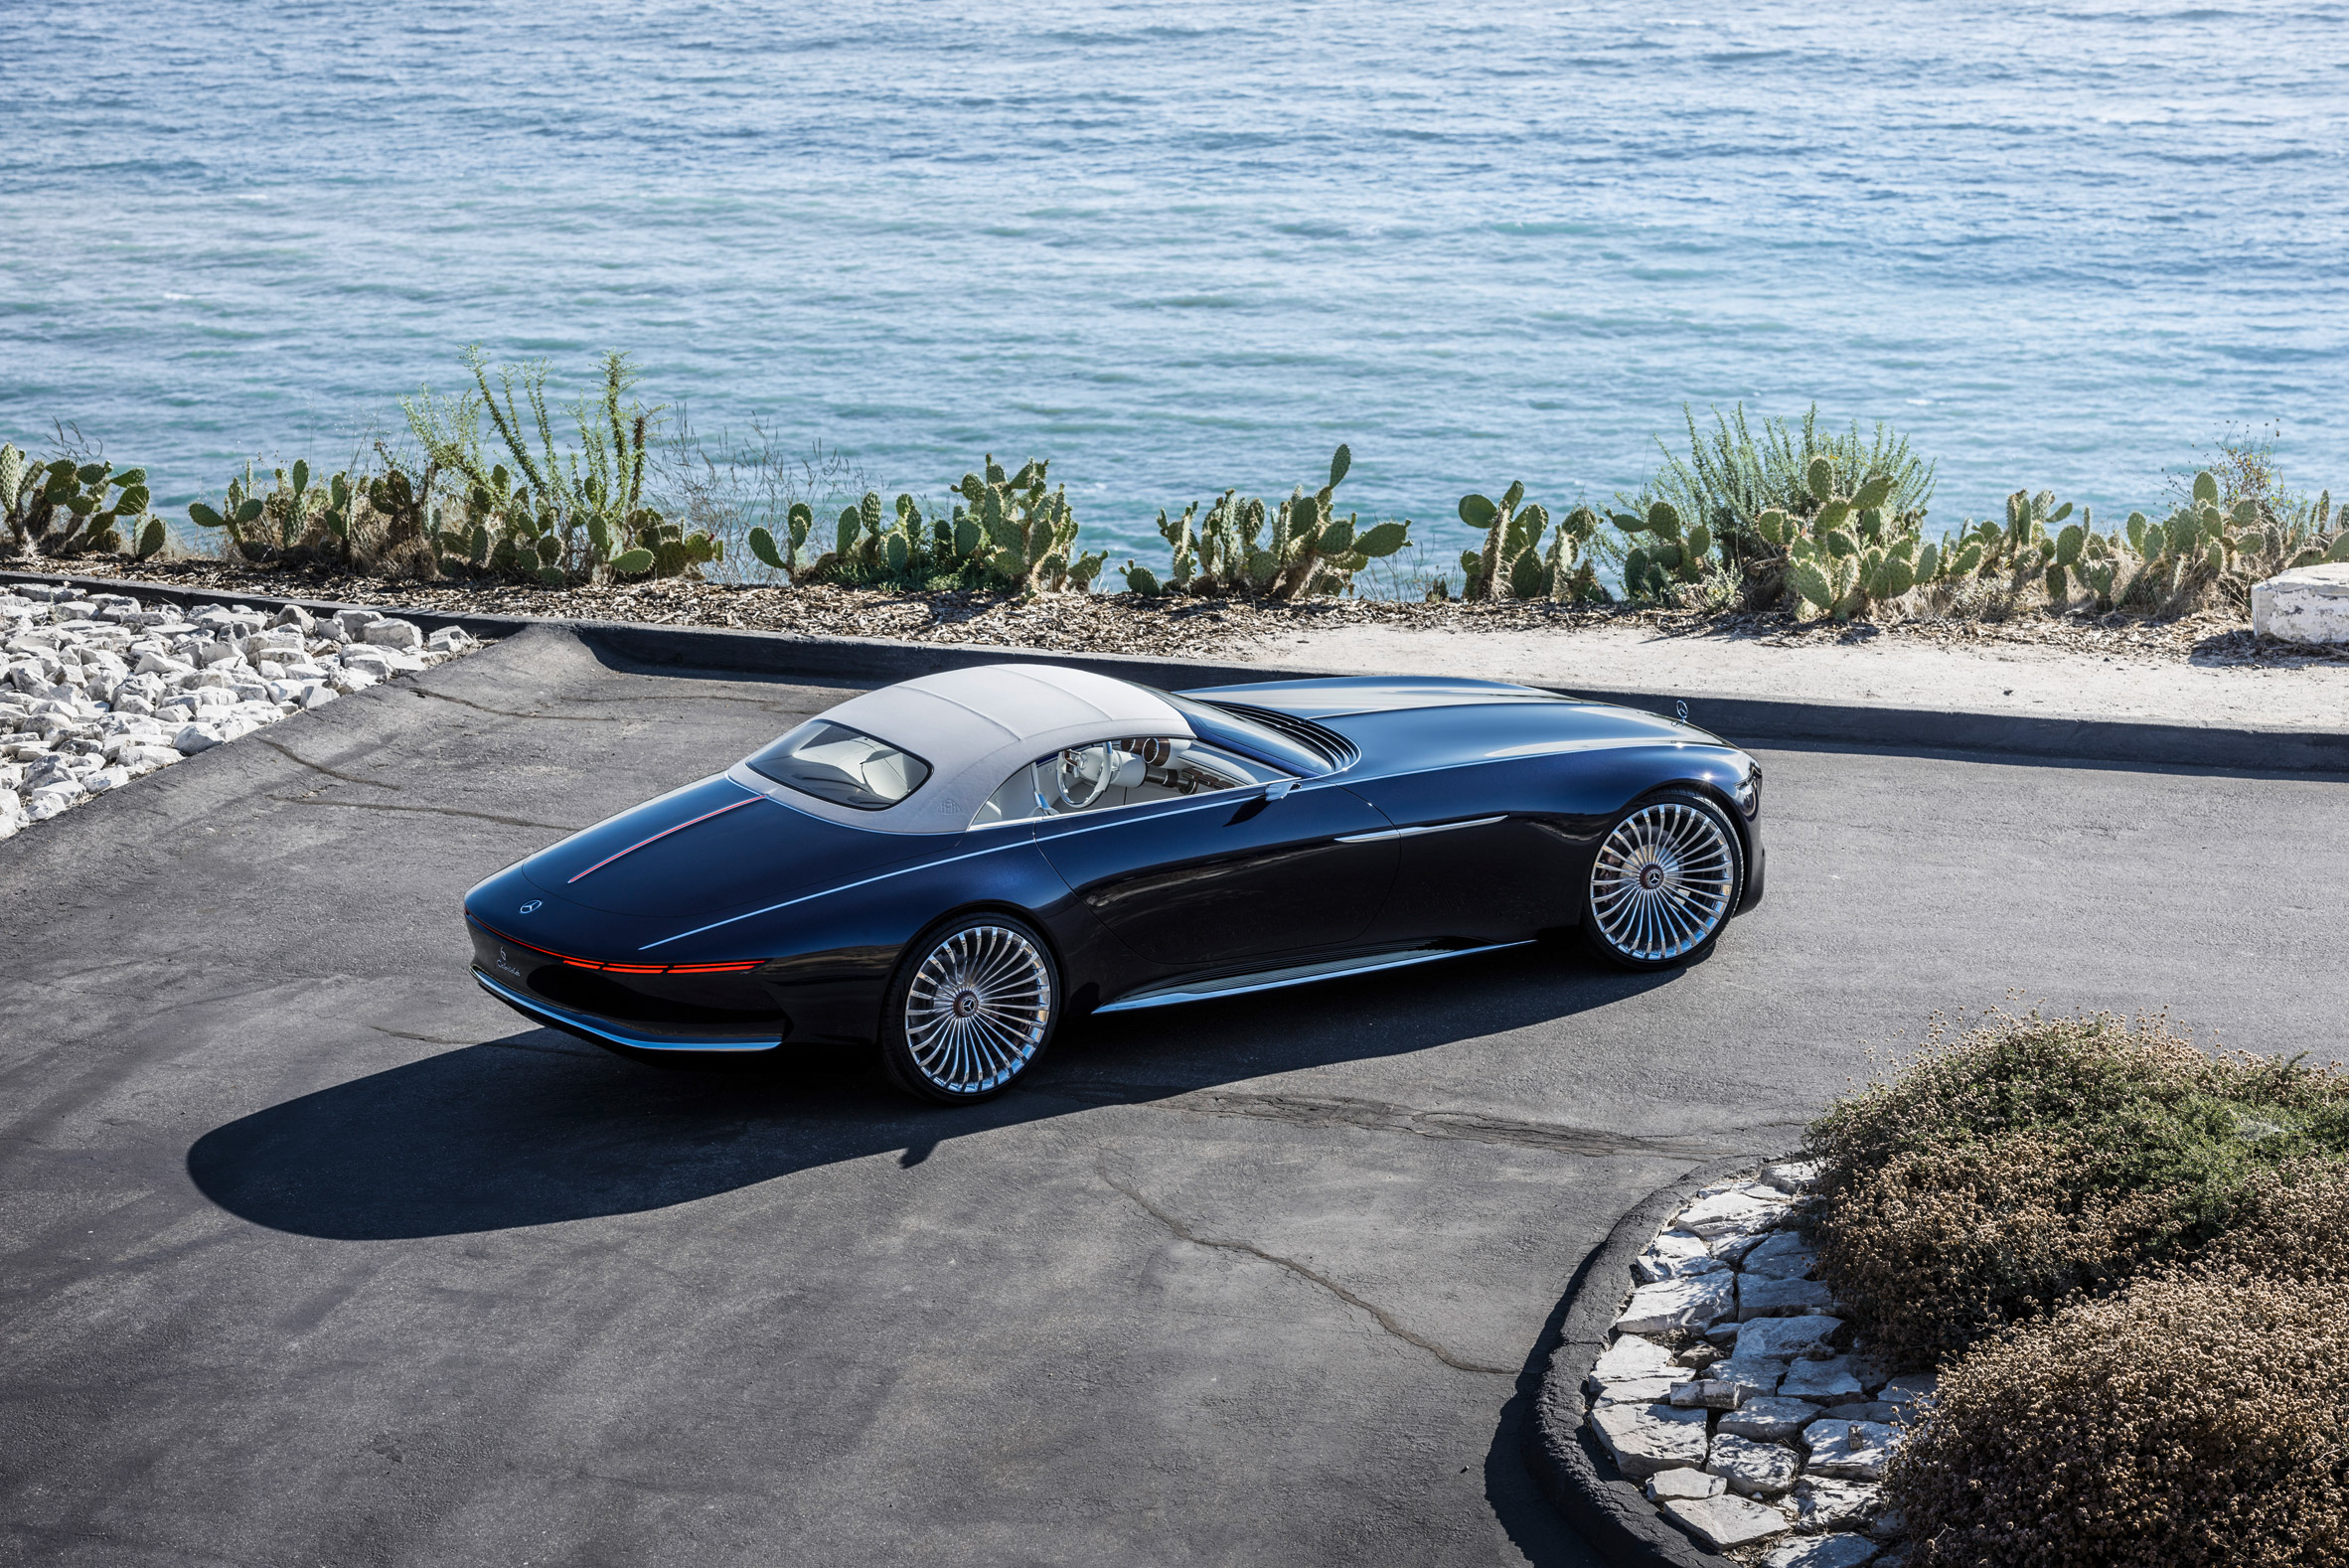 Mercedes-Benz's latest concept car takes its design cues from art deco